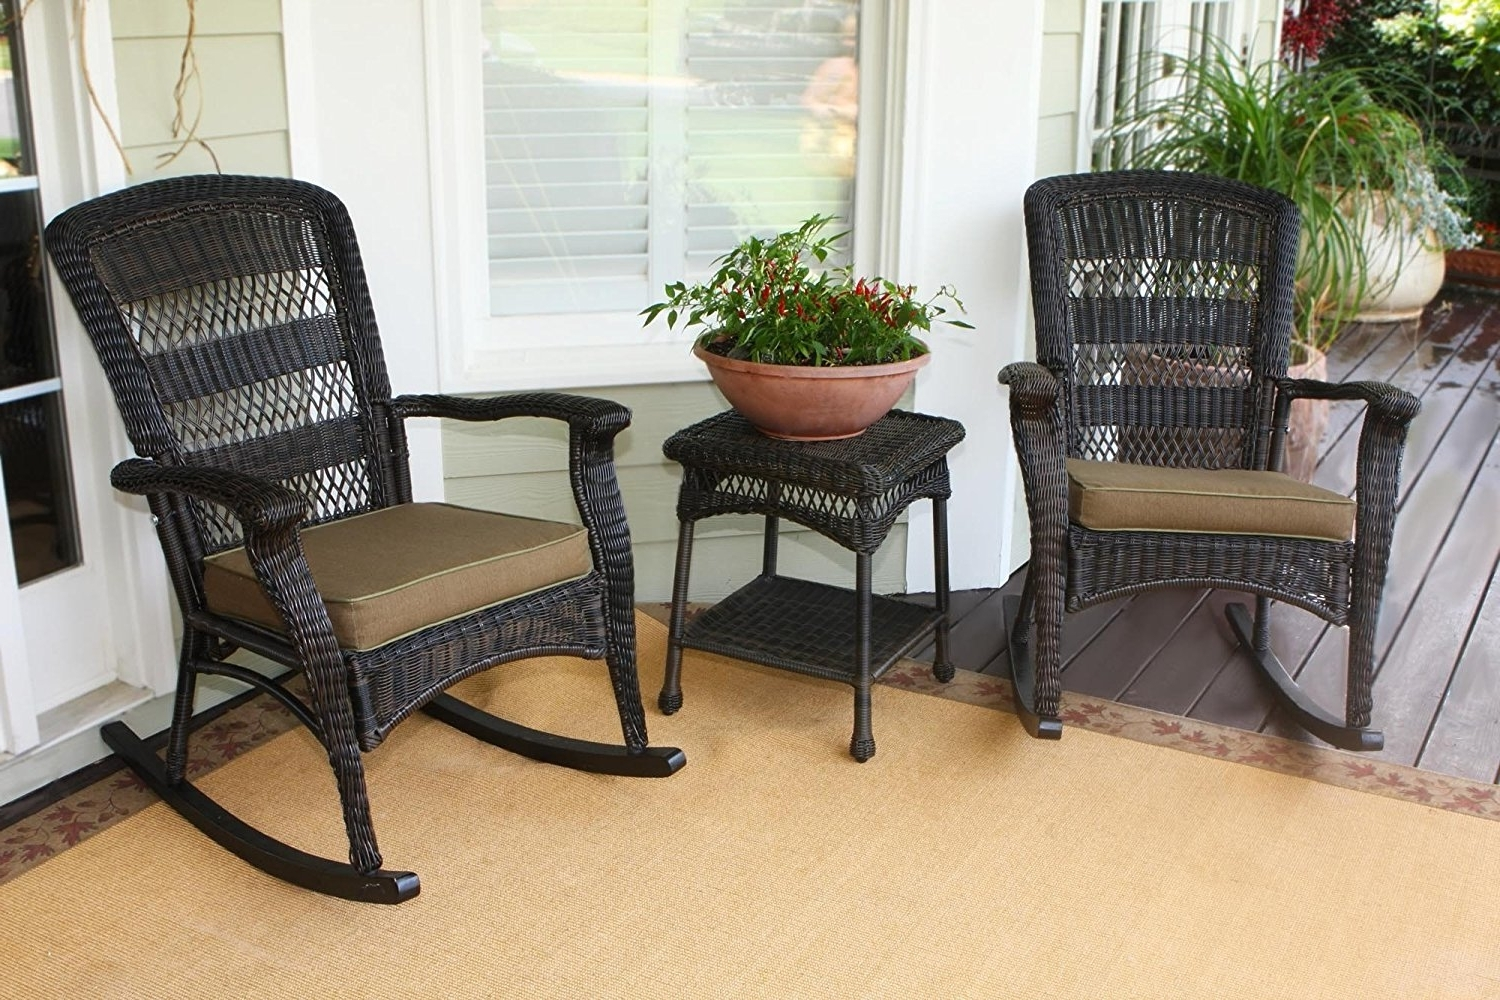 Black Patio Rocking Chairs With Most Recent Outdoor Rocking Chair Cushions Home : Beautiful Outdoor Rocking (View 7 of 20)